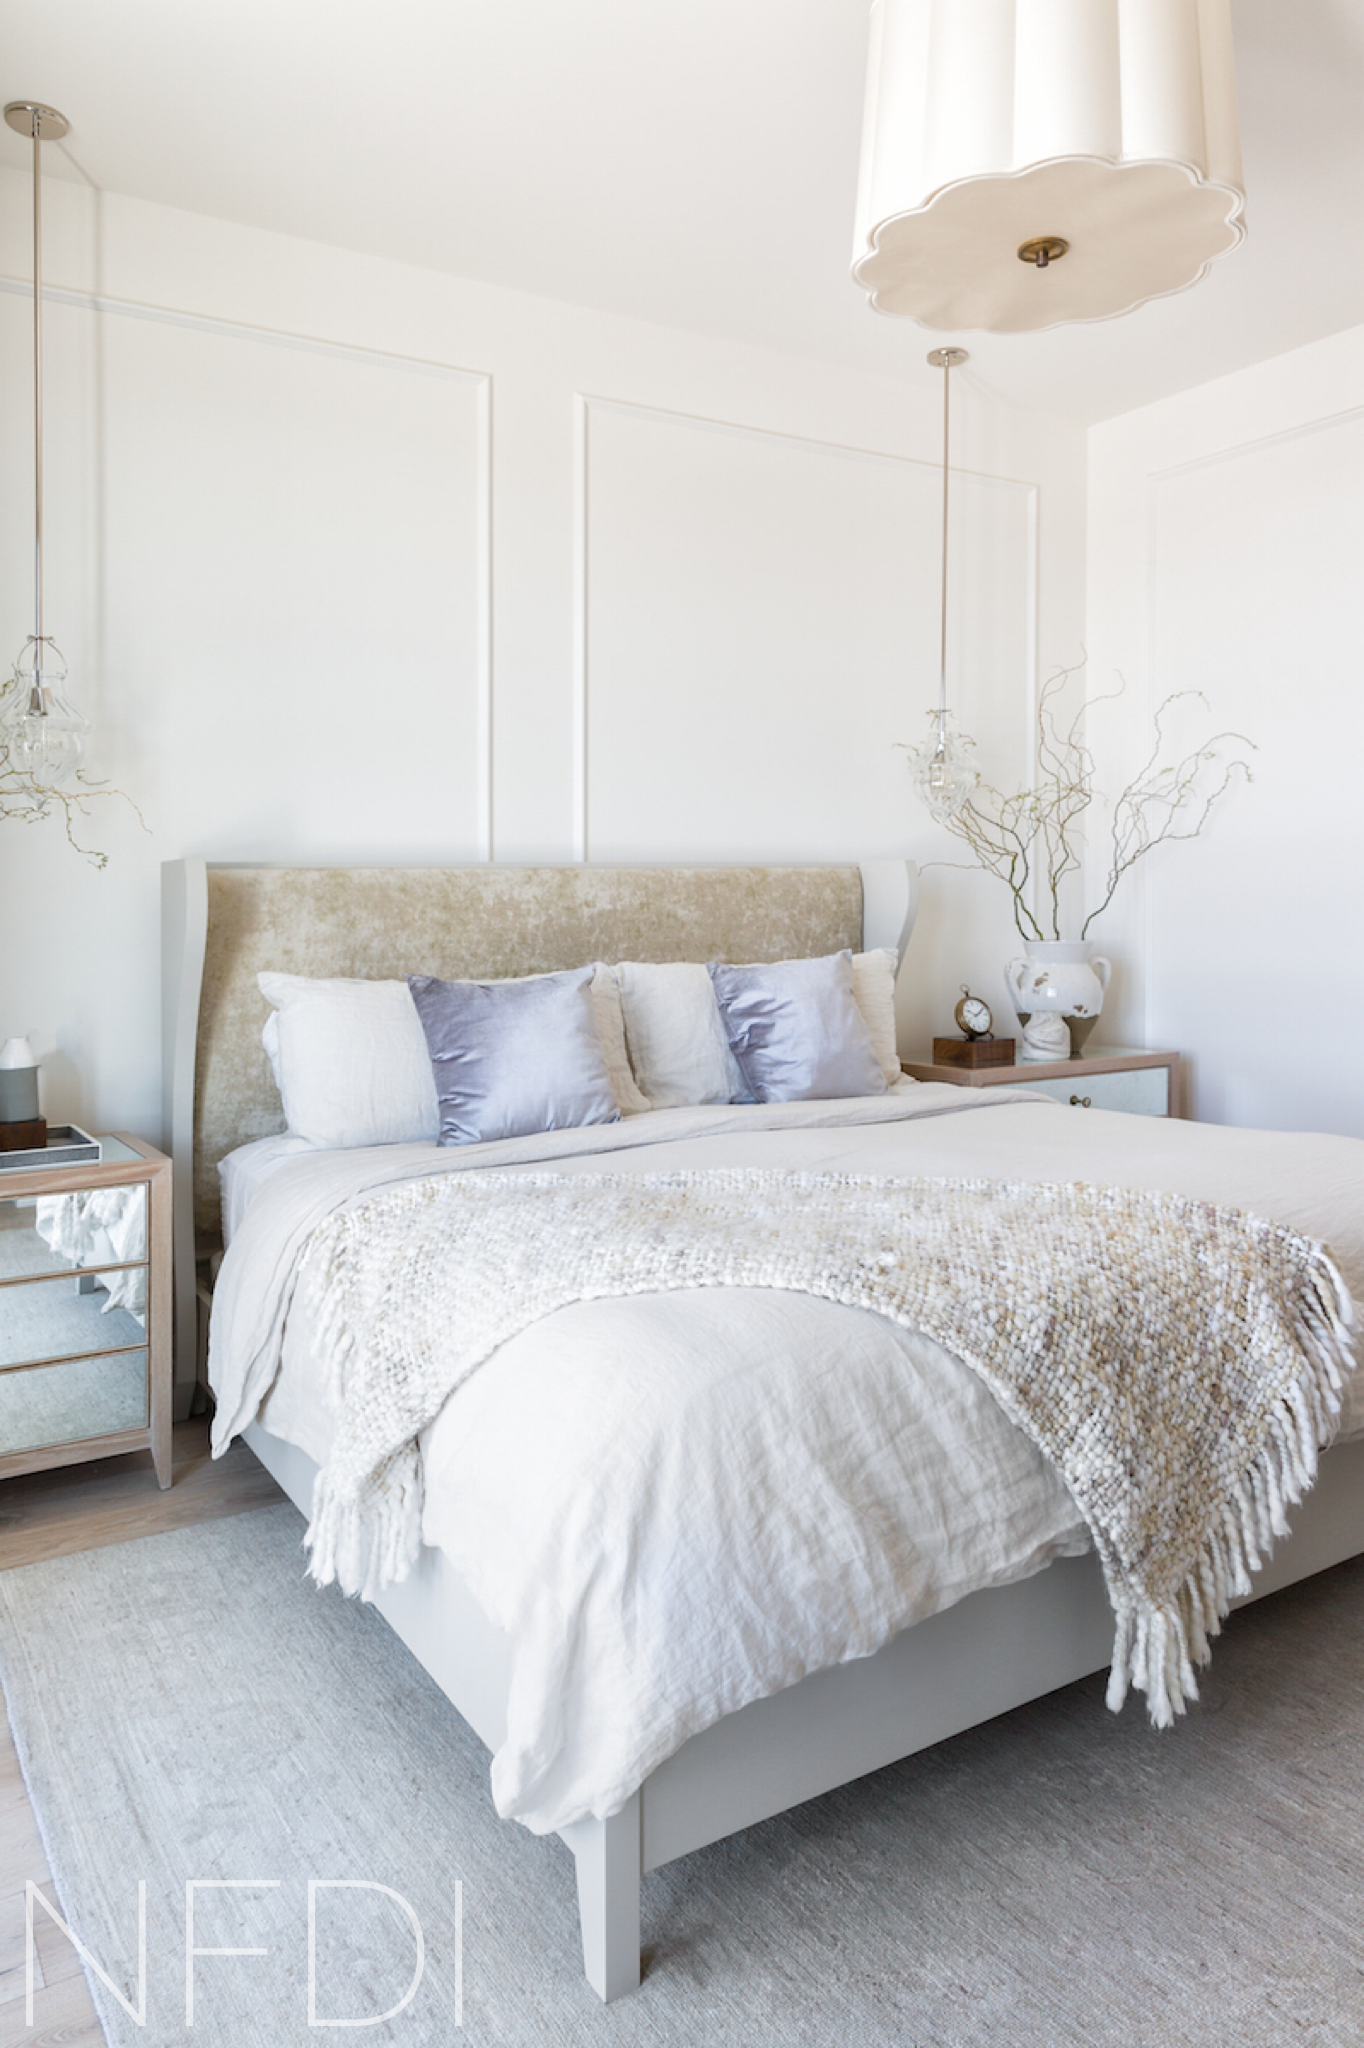 Rural Alberta Country House, Master Bedroom, Interior Design by Nyla Free Designs Inc., Calgary Interior Designer, Architecture by DeJong Design Associates, Photography: Phil Crozier